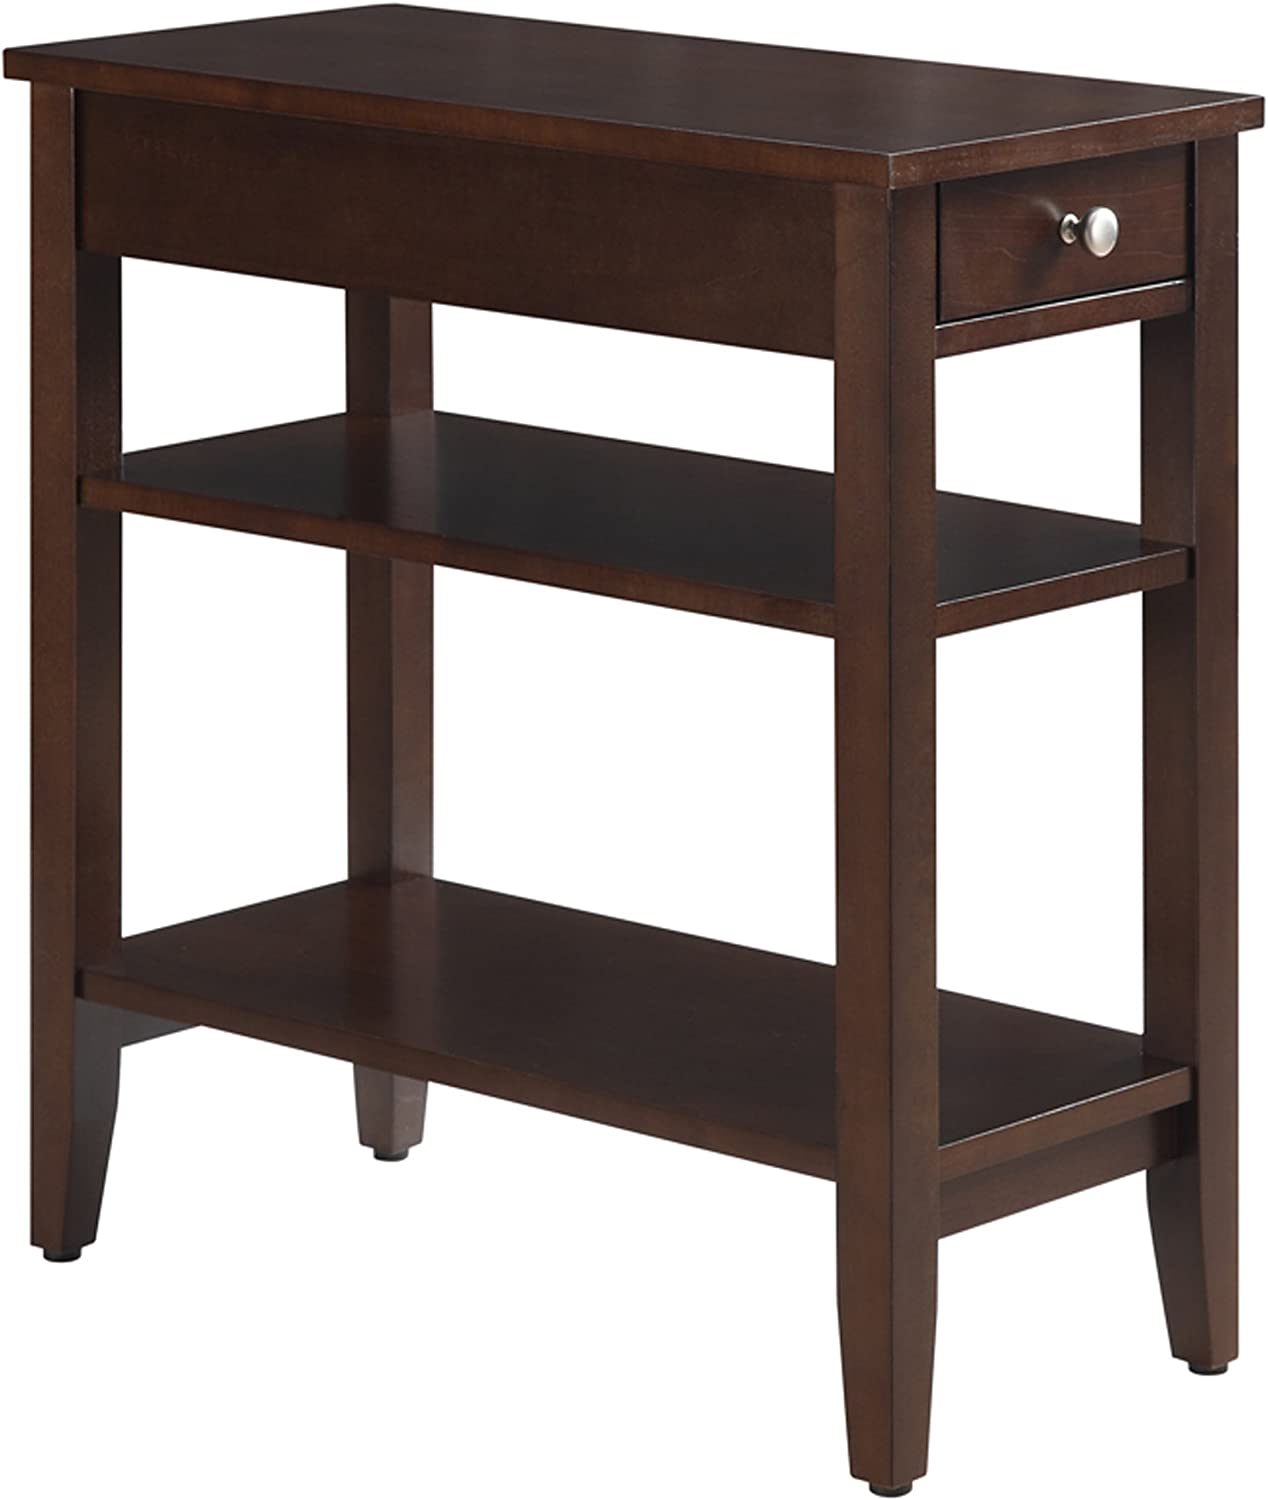 Convenience Concepts American Heritage 3-Tier End Table with Drawer, Espresso Finish